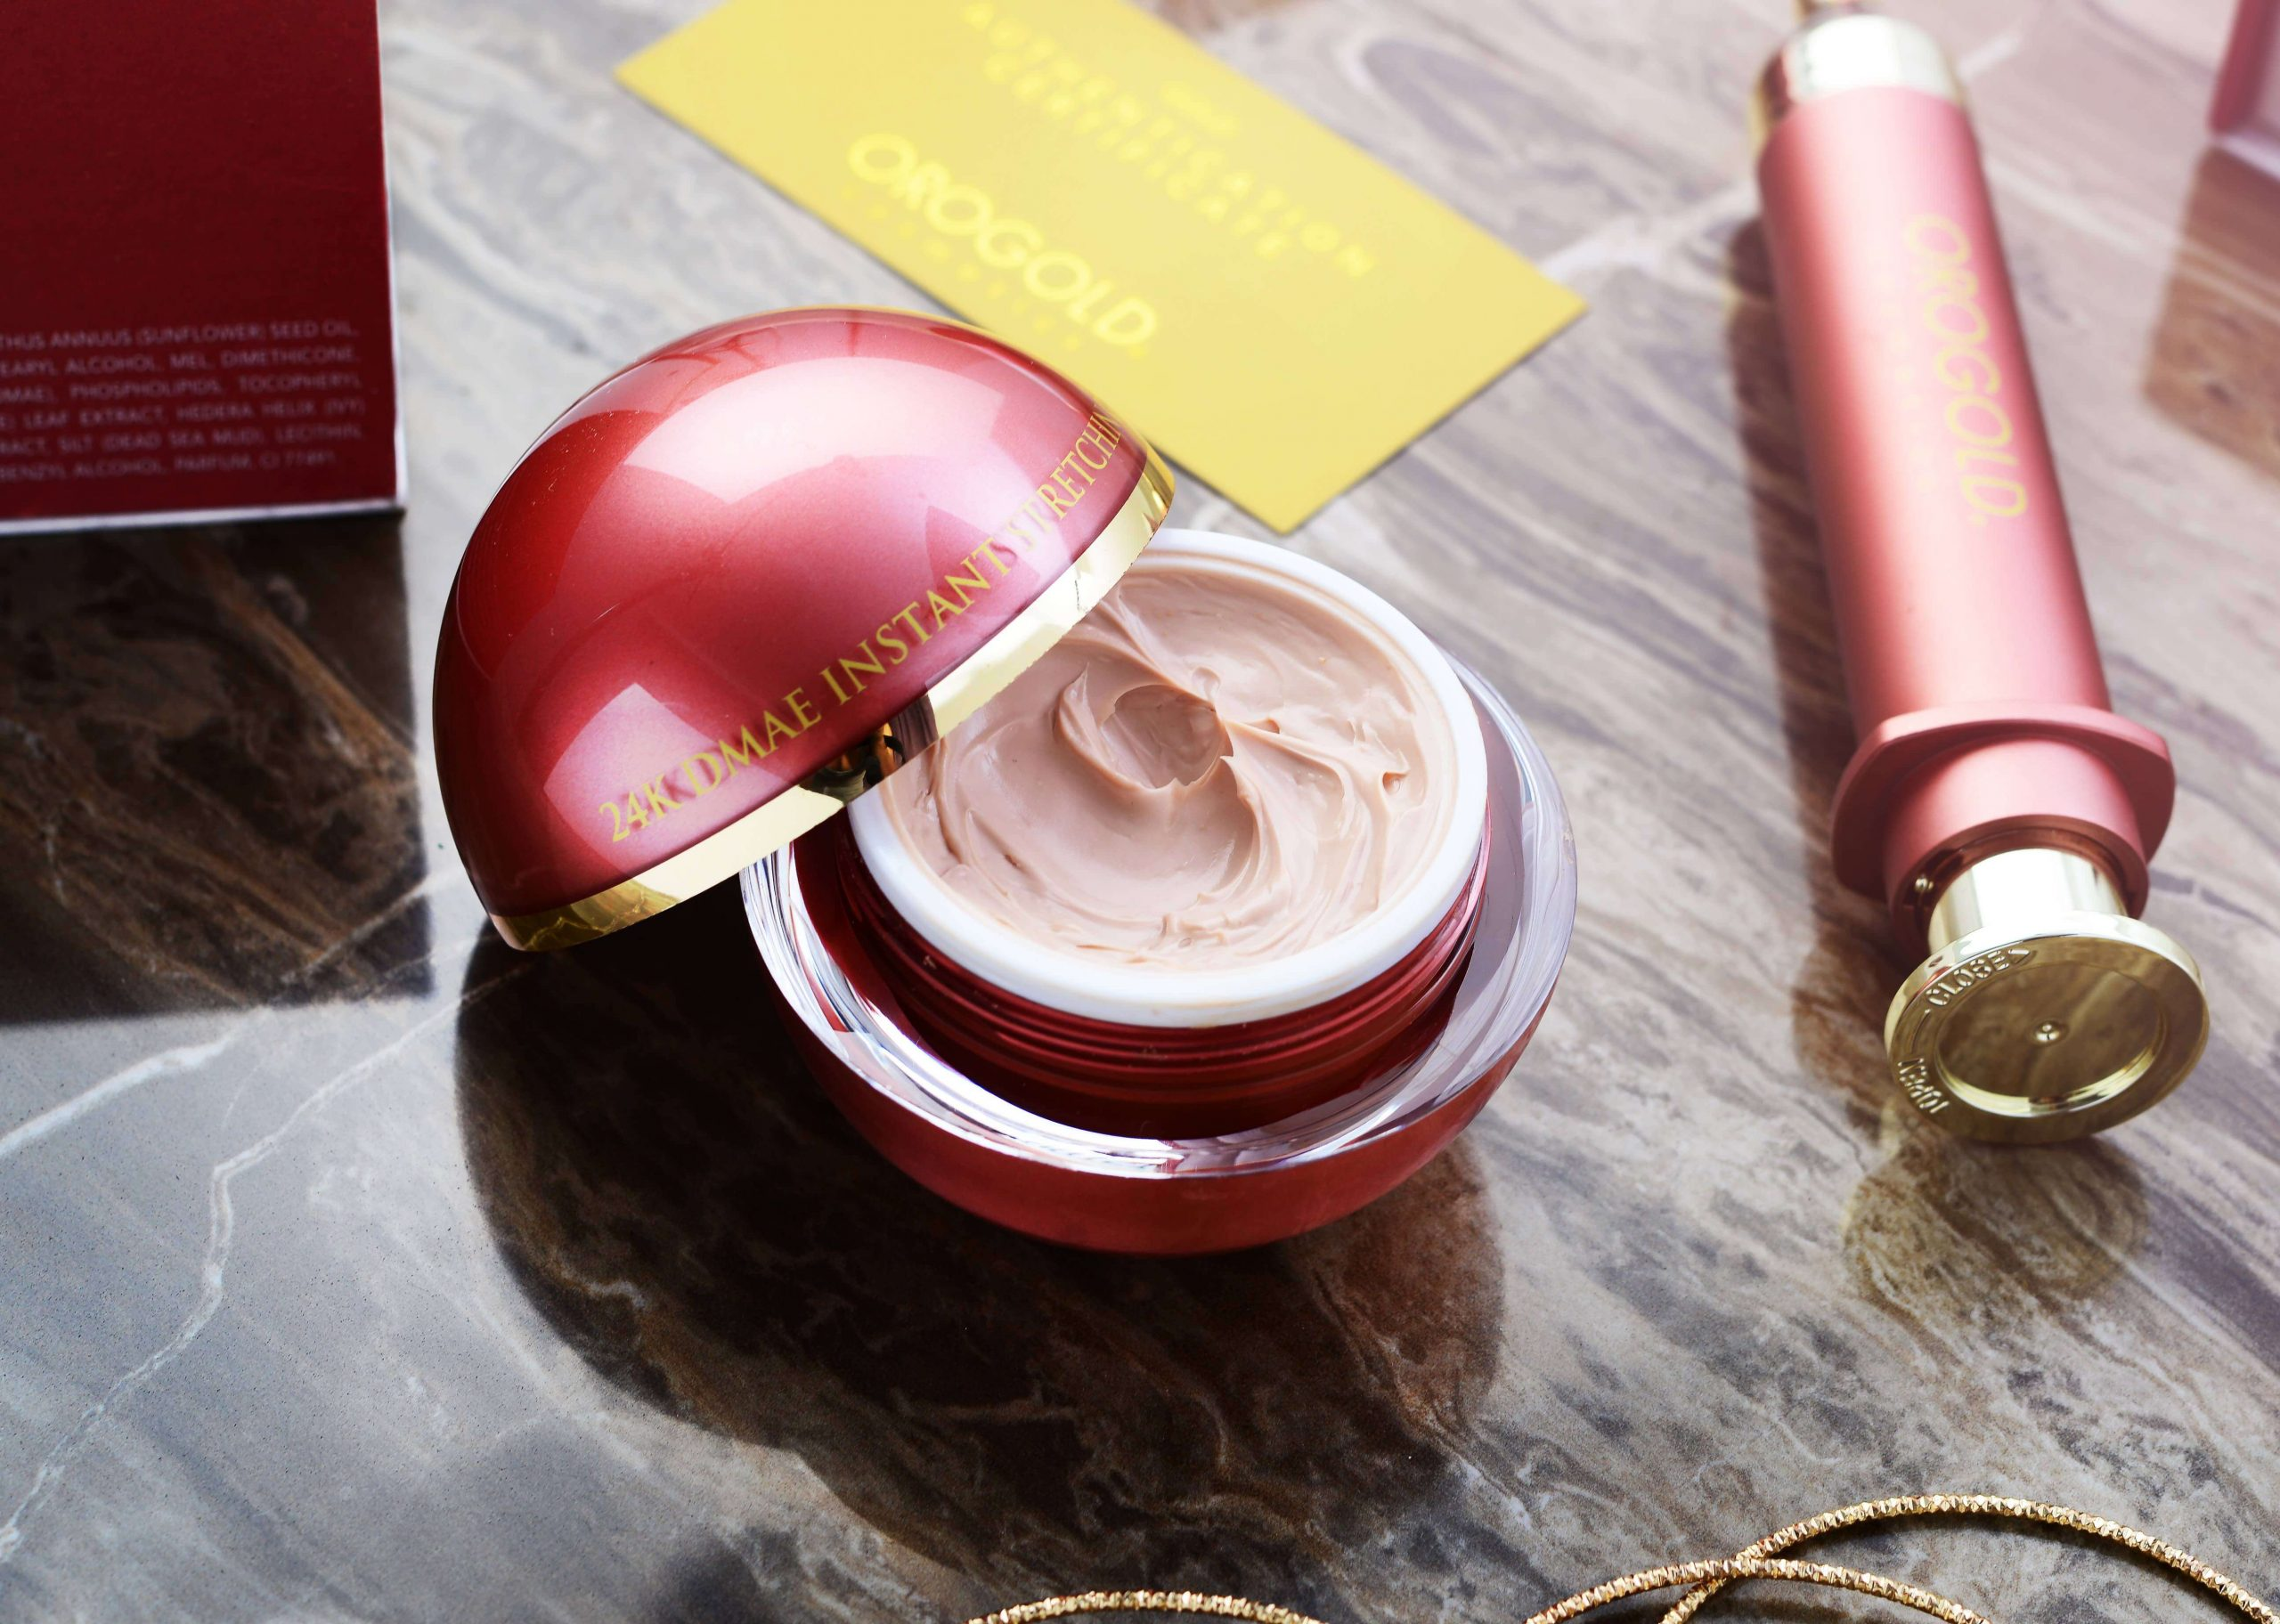 OROGOLD face mask from DMAE Collection